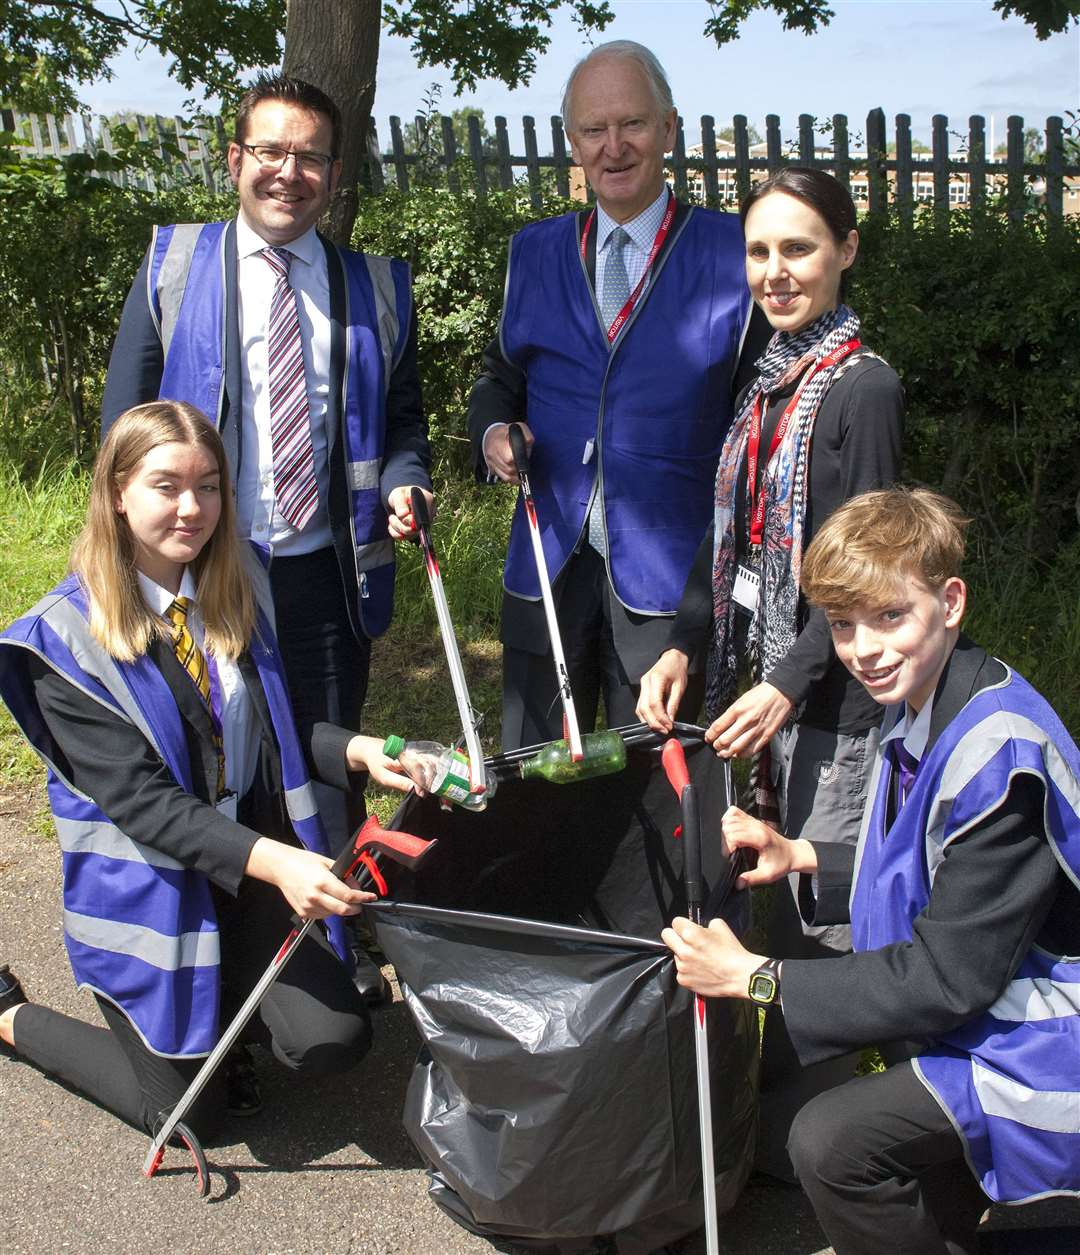 The borough council has agreed to install three bins in response to the campaign led by Adele Powell